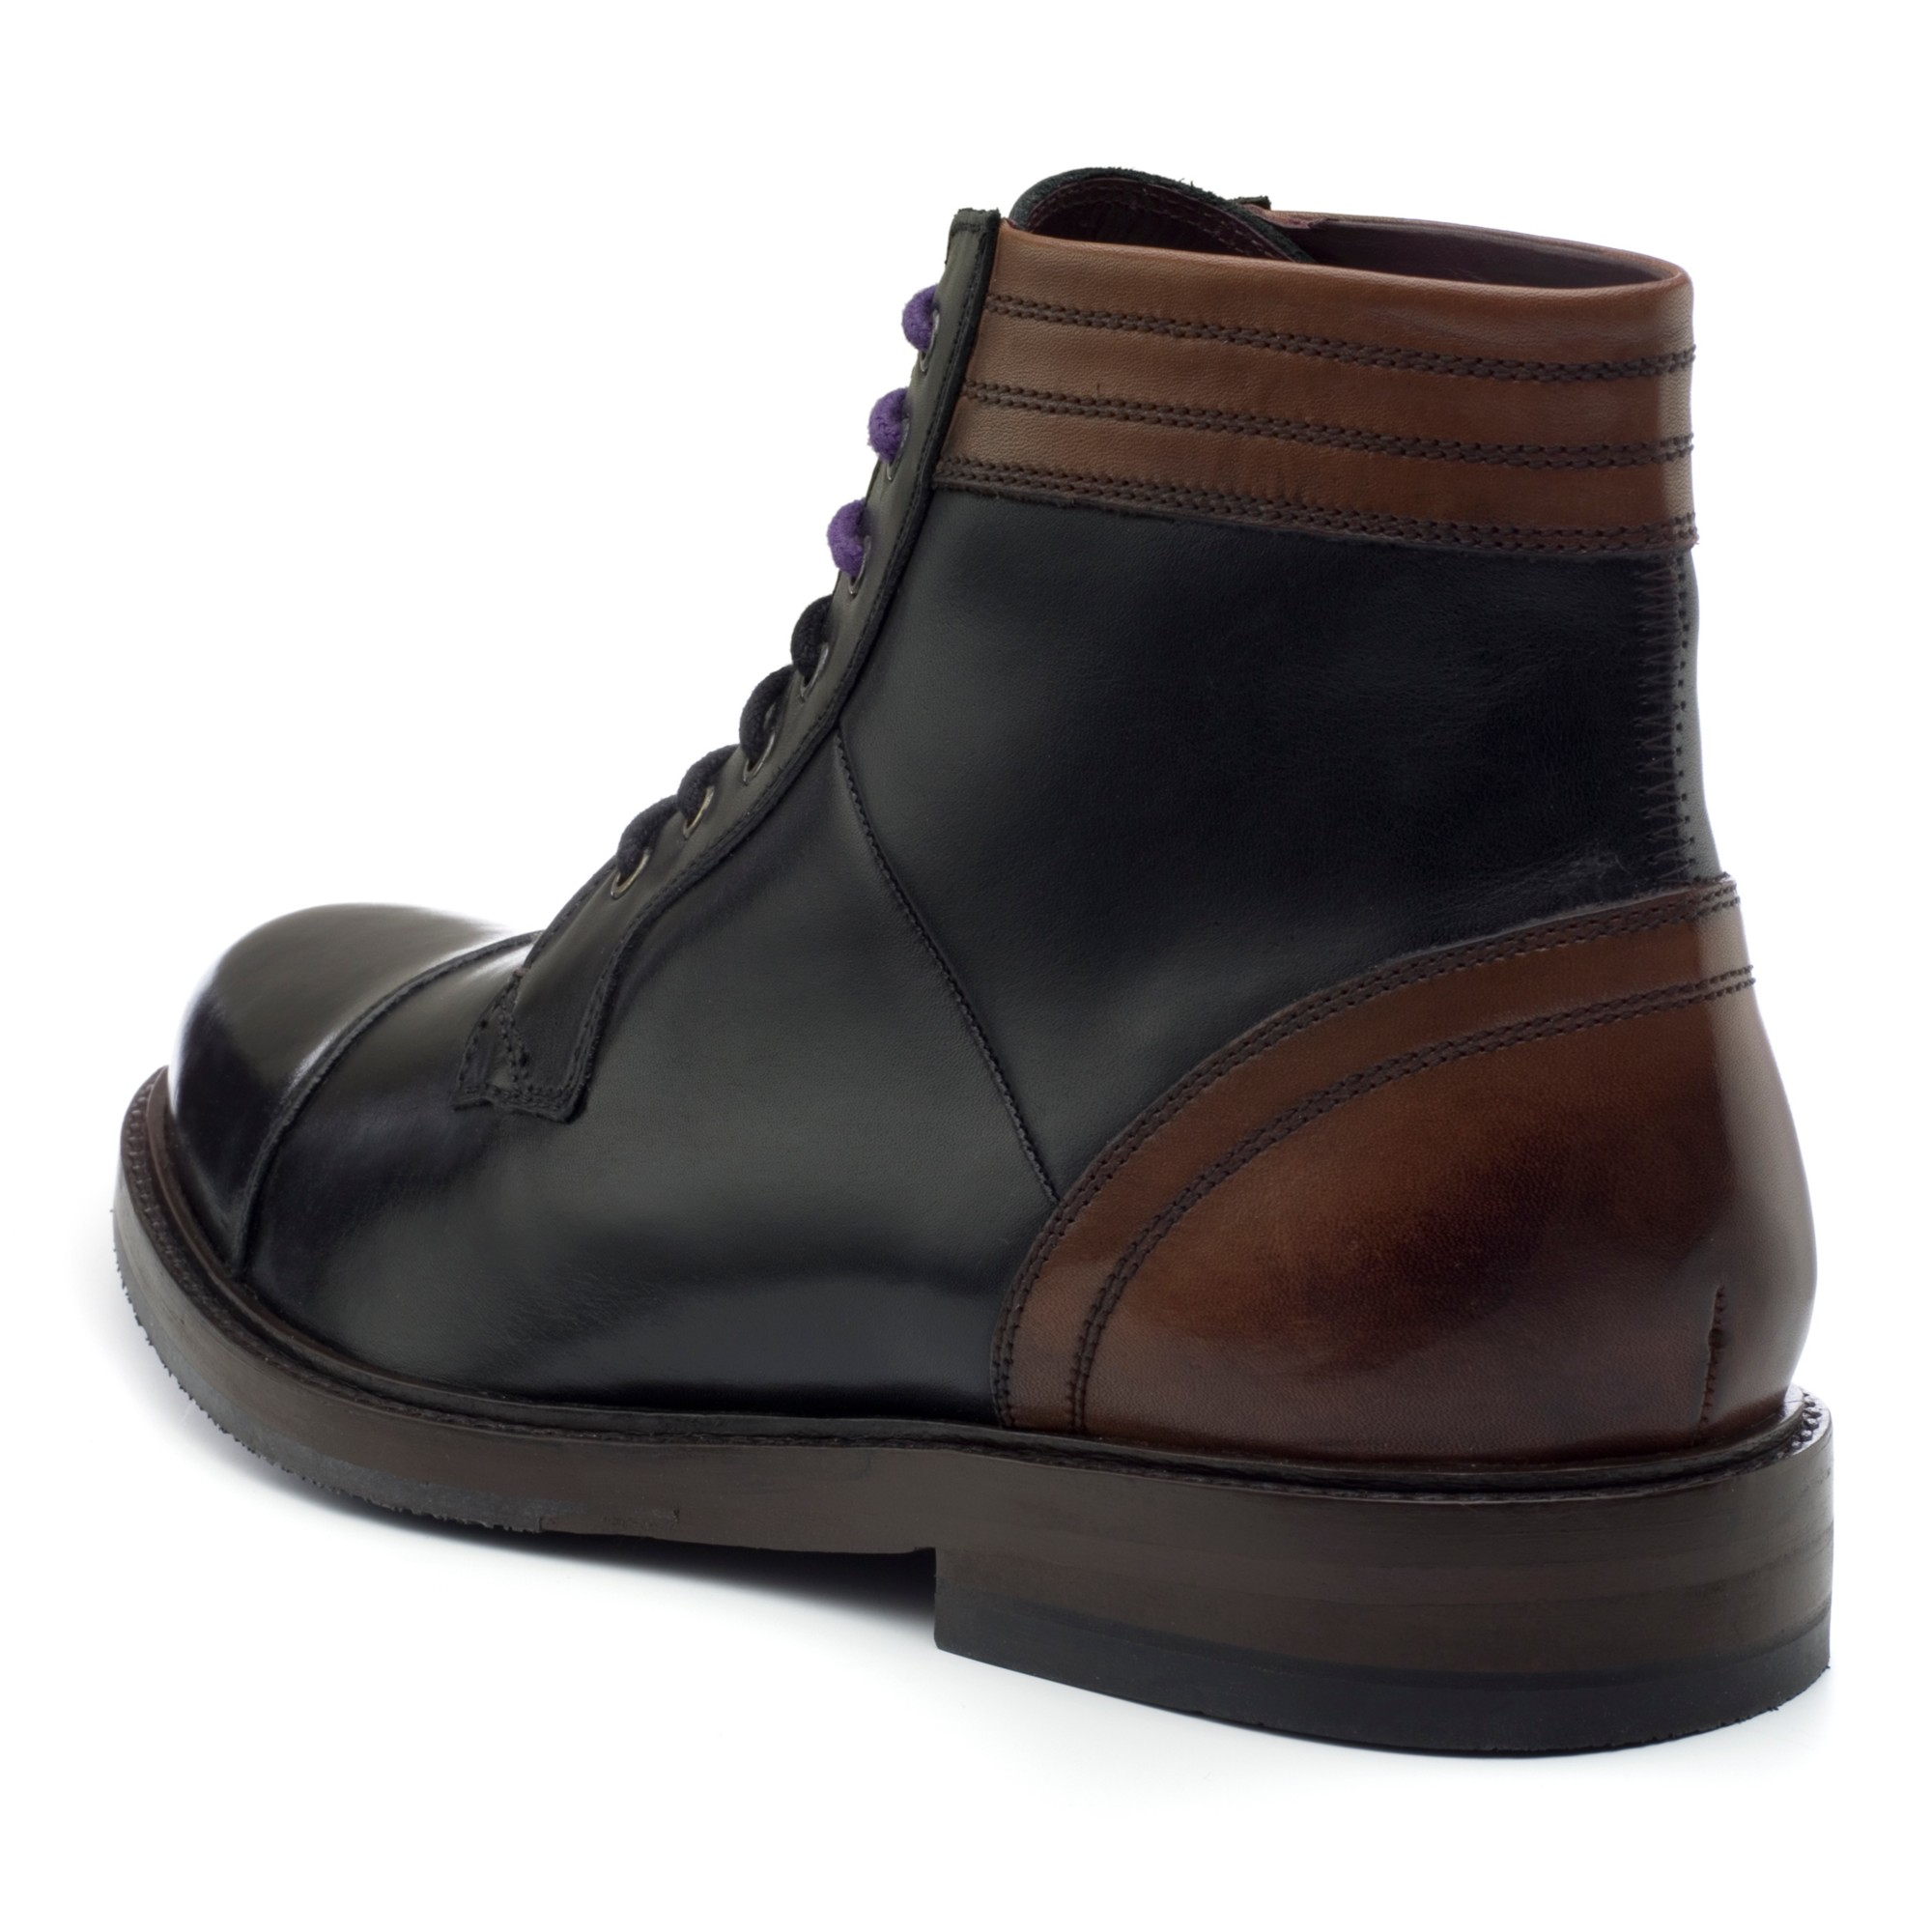 c5db8d731cda Ted Baker Musken Leather Ankle Boots in Black for Men - Lyst